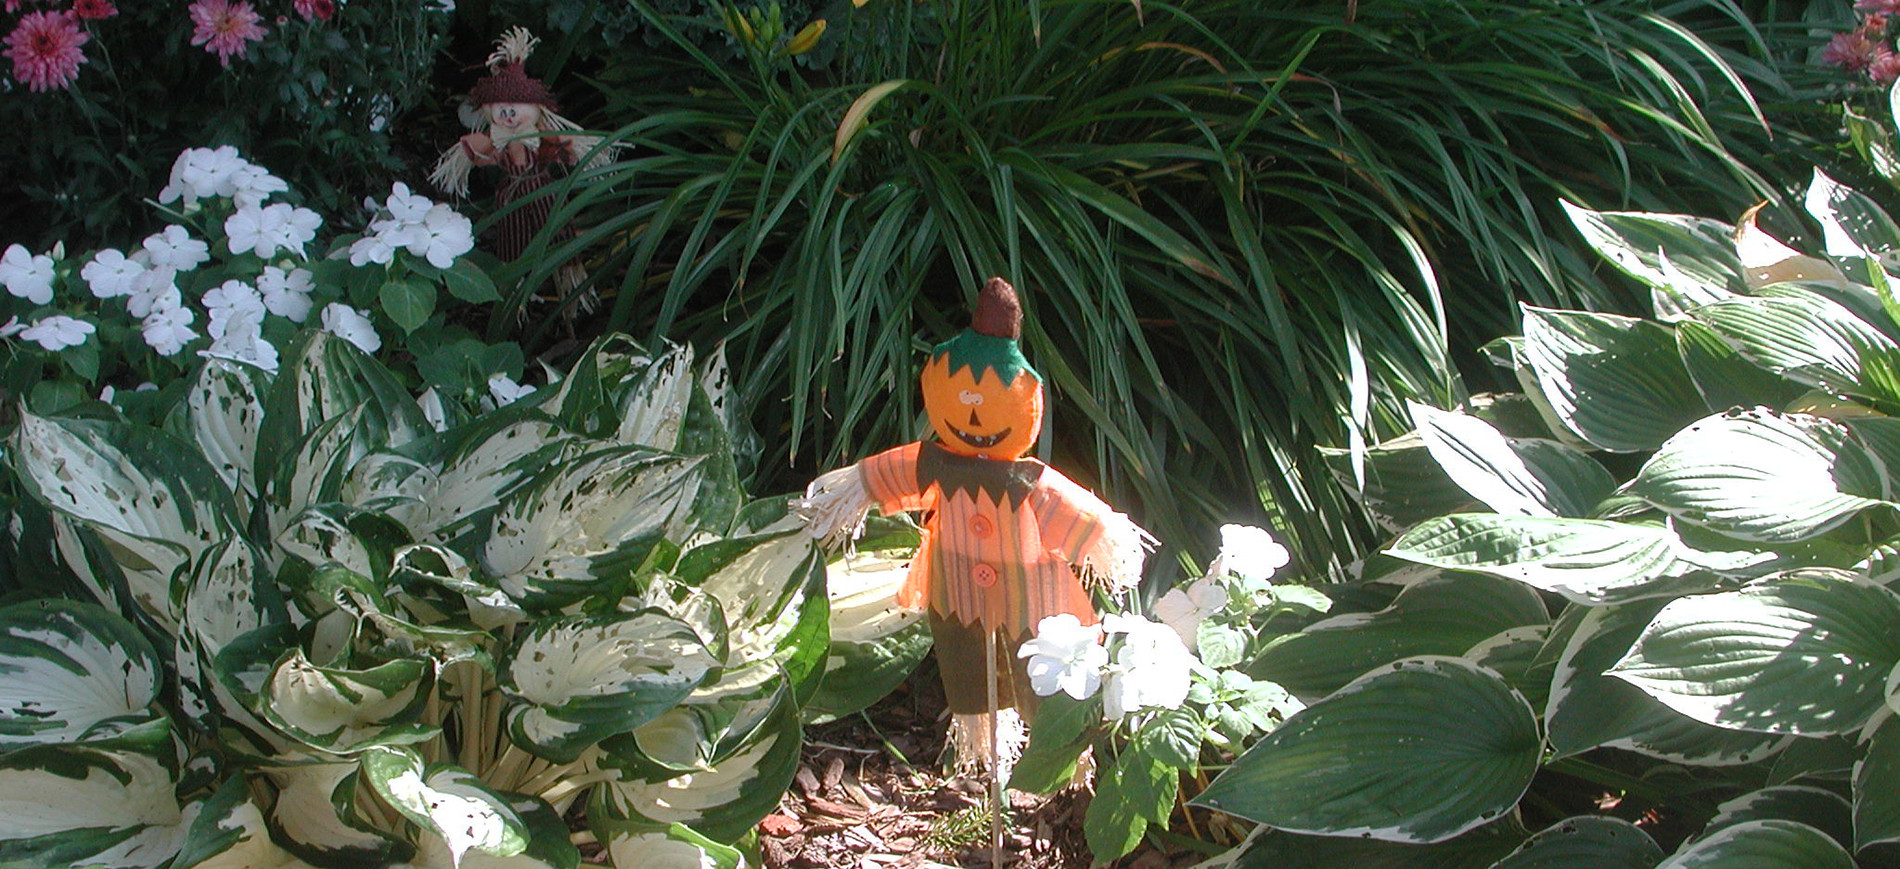 Toy scarecrow in garden with hosta, daylilies